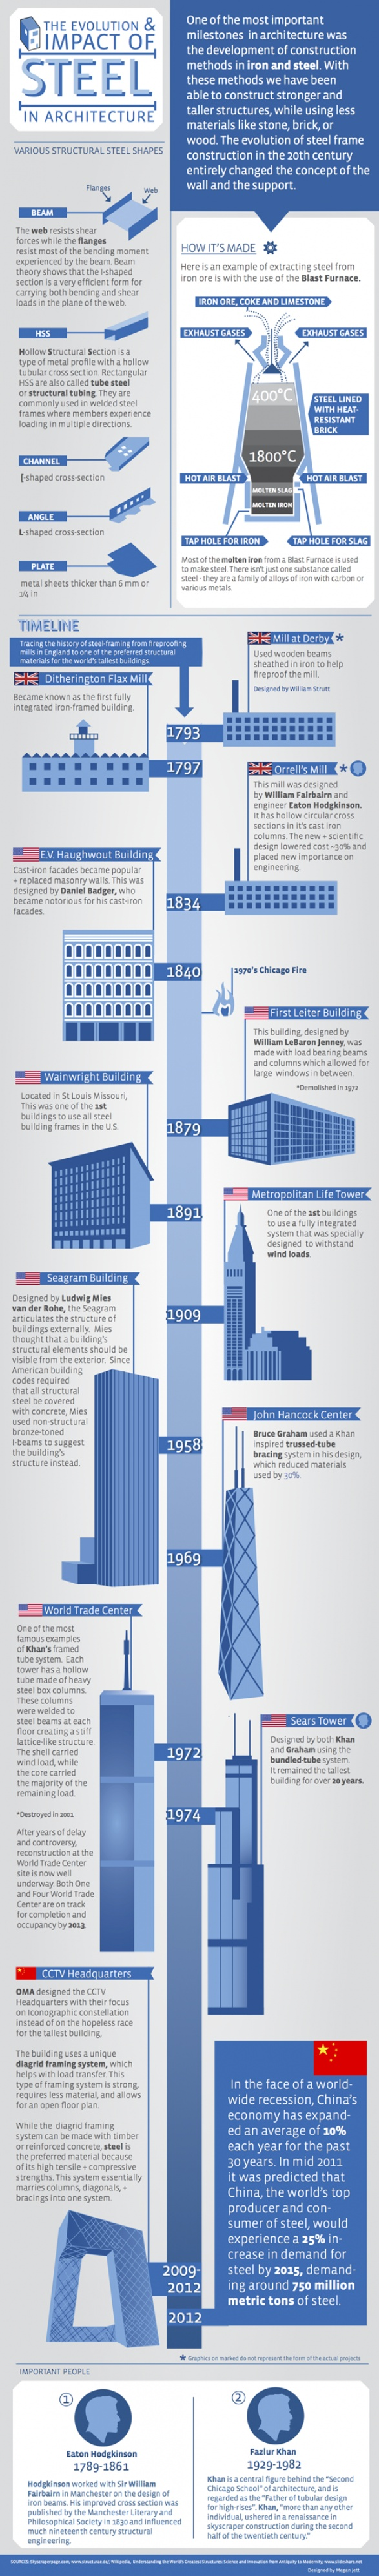 Best Architecture Images On   Info Graphics